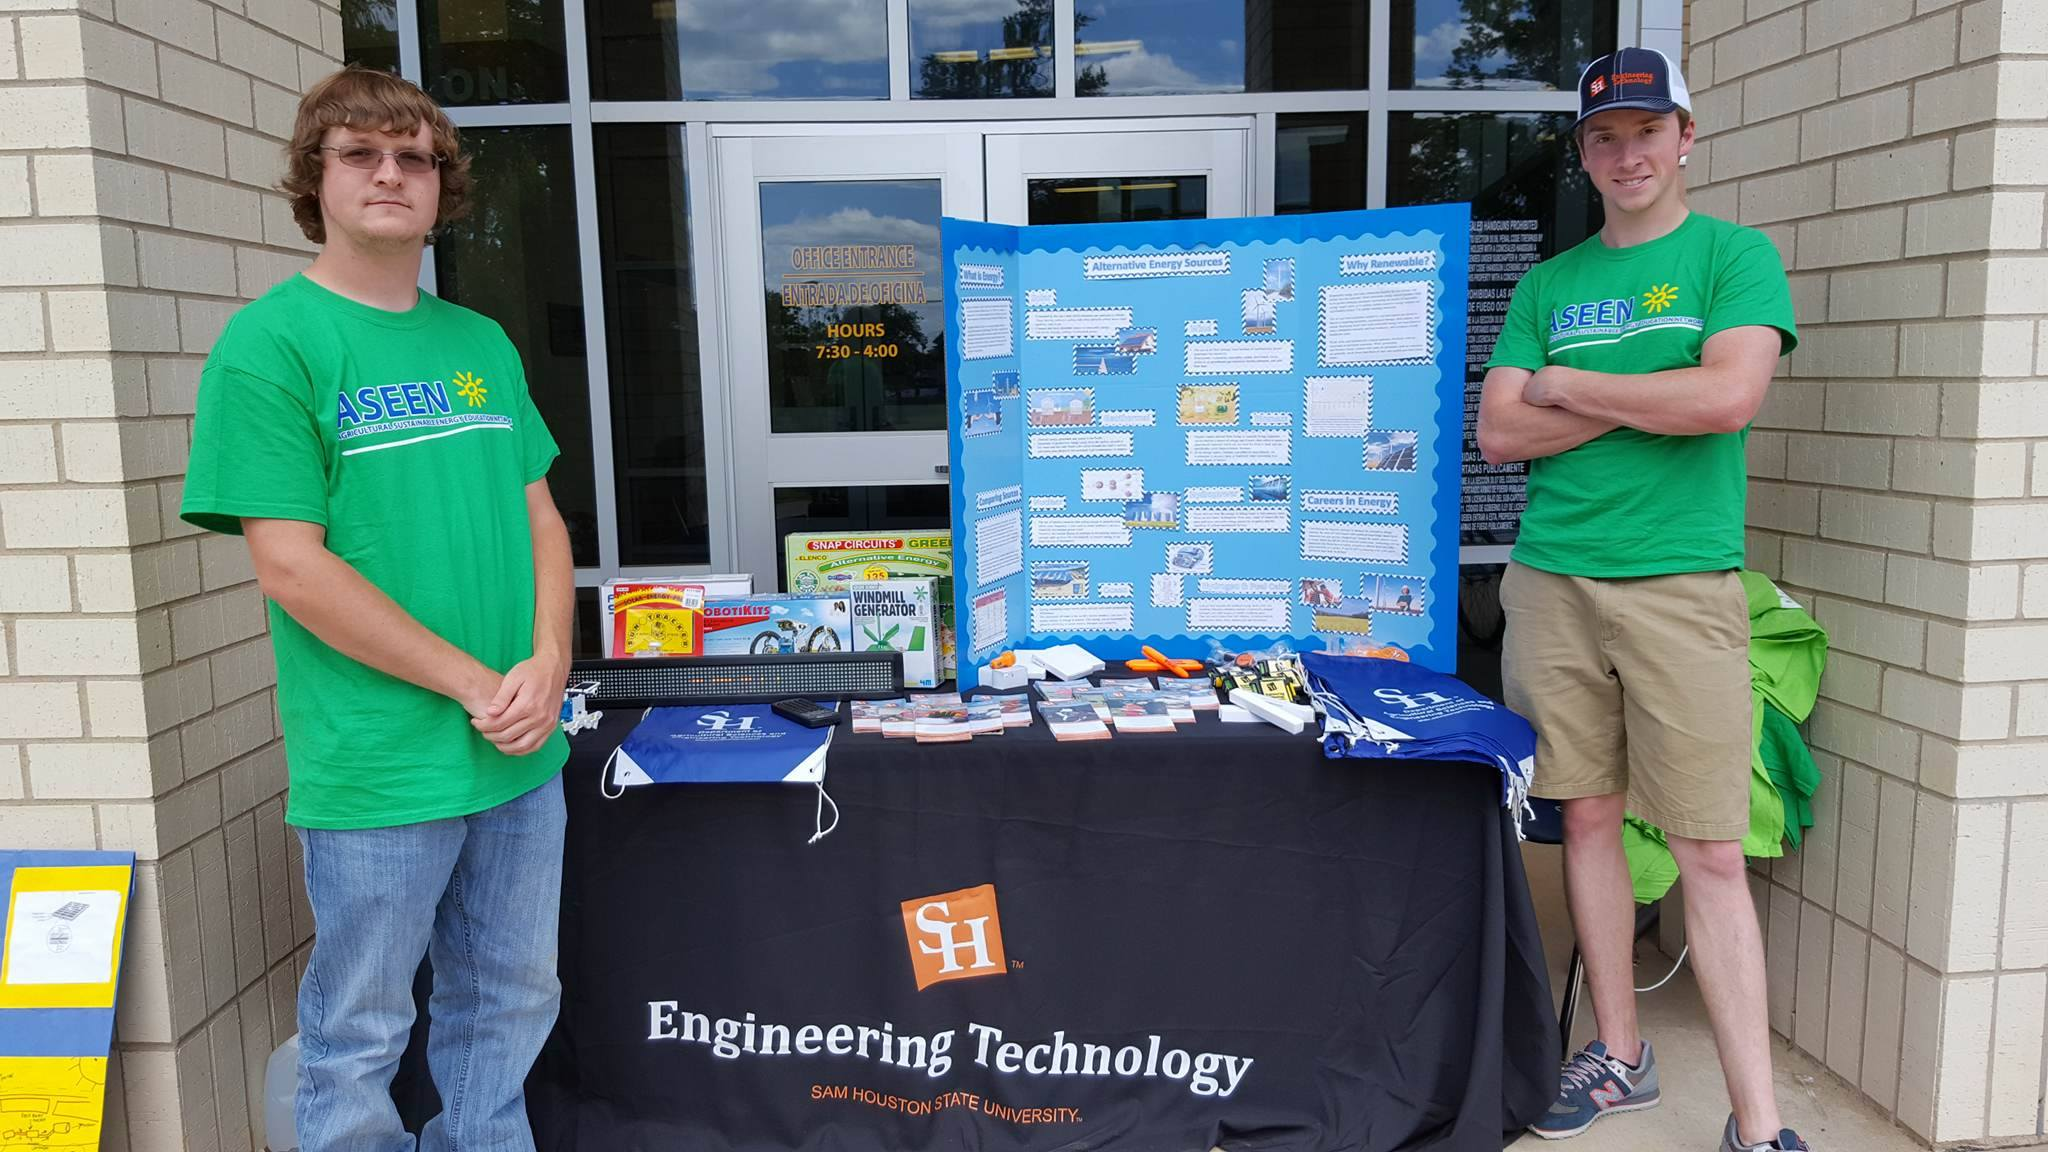 On And Off Campus Involvement Elenco Snap Circuits Green Alternative Energy From Over The Past Year Members Of Both Aseen Rcea Traveled To Local Schools Spoke Groups Science Agriculture Students With Intent